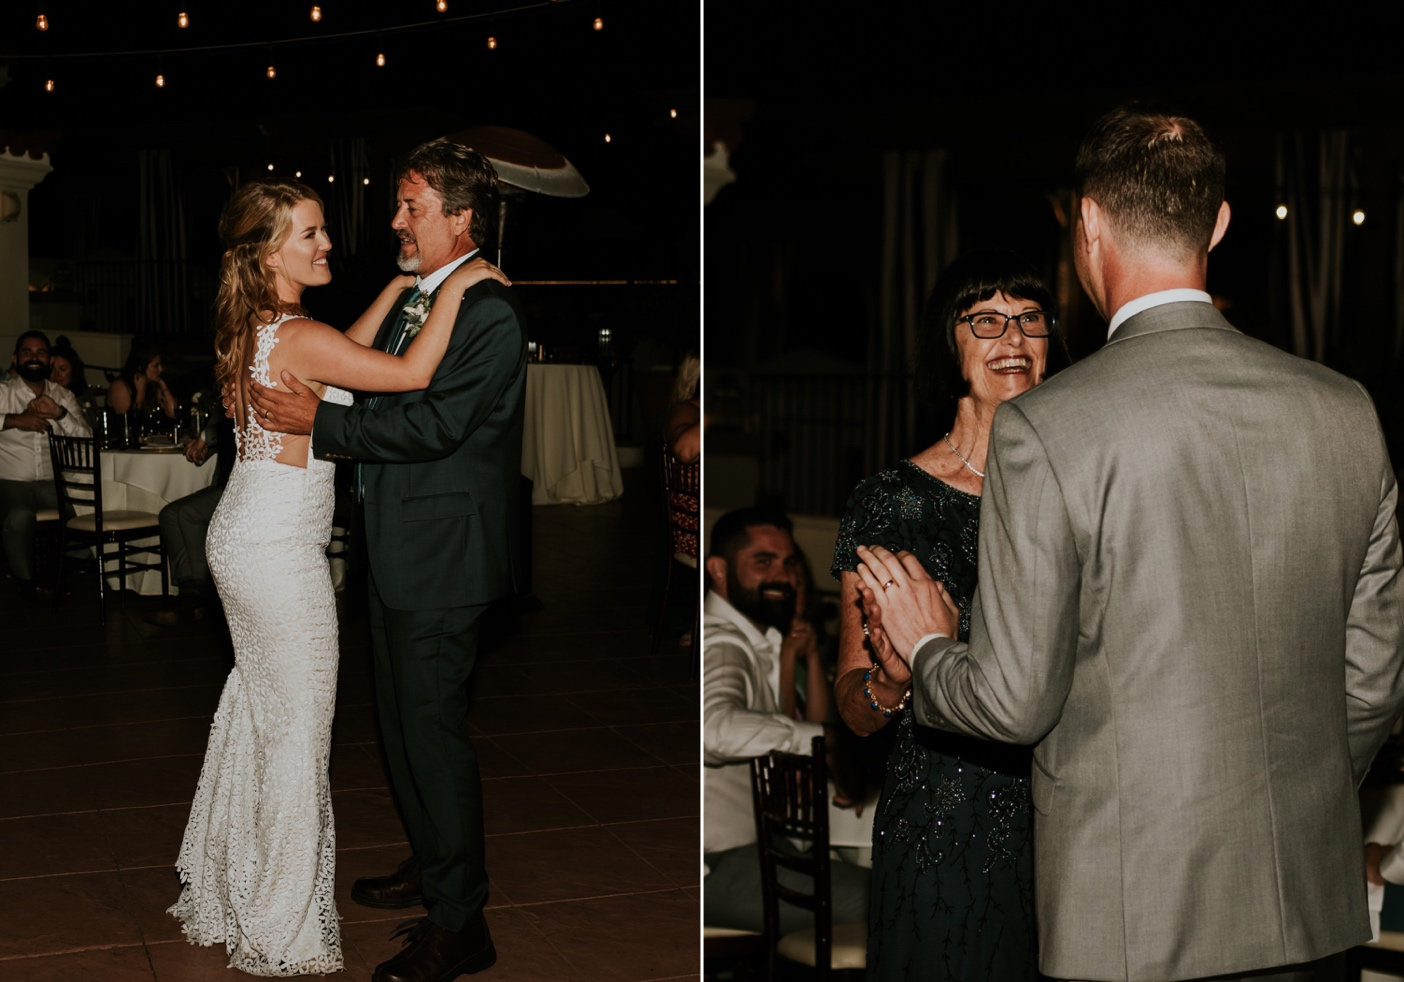 101_chynna-chris-santa-barbara-wedding-557_chynna-chris-santa-barbara-wedding-542.jpg